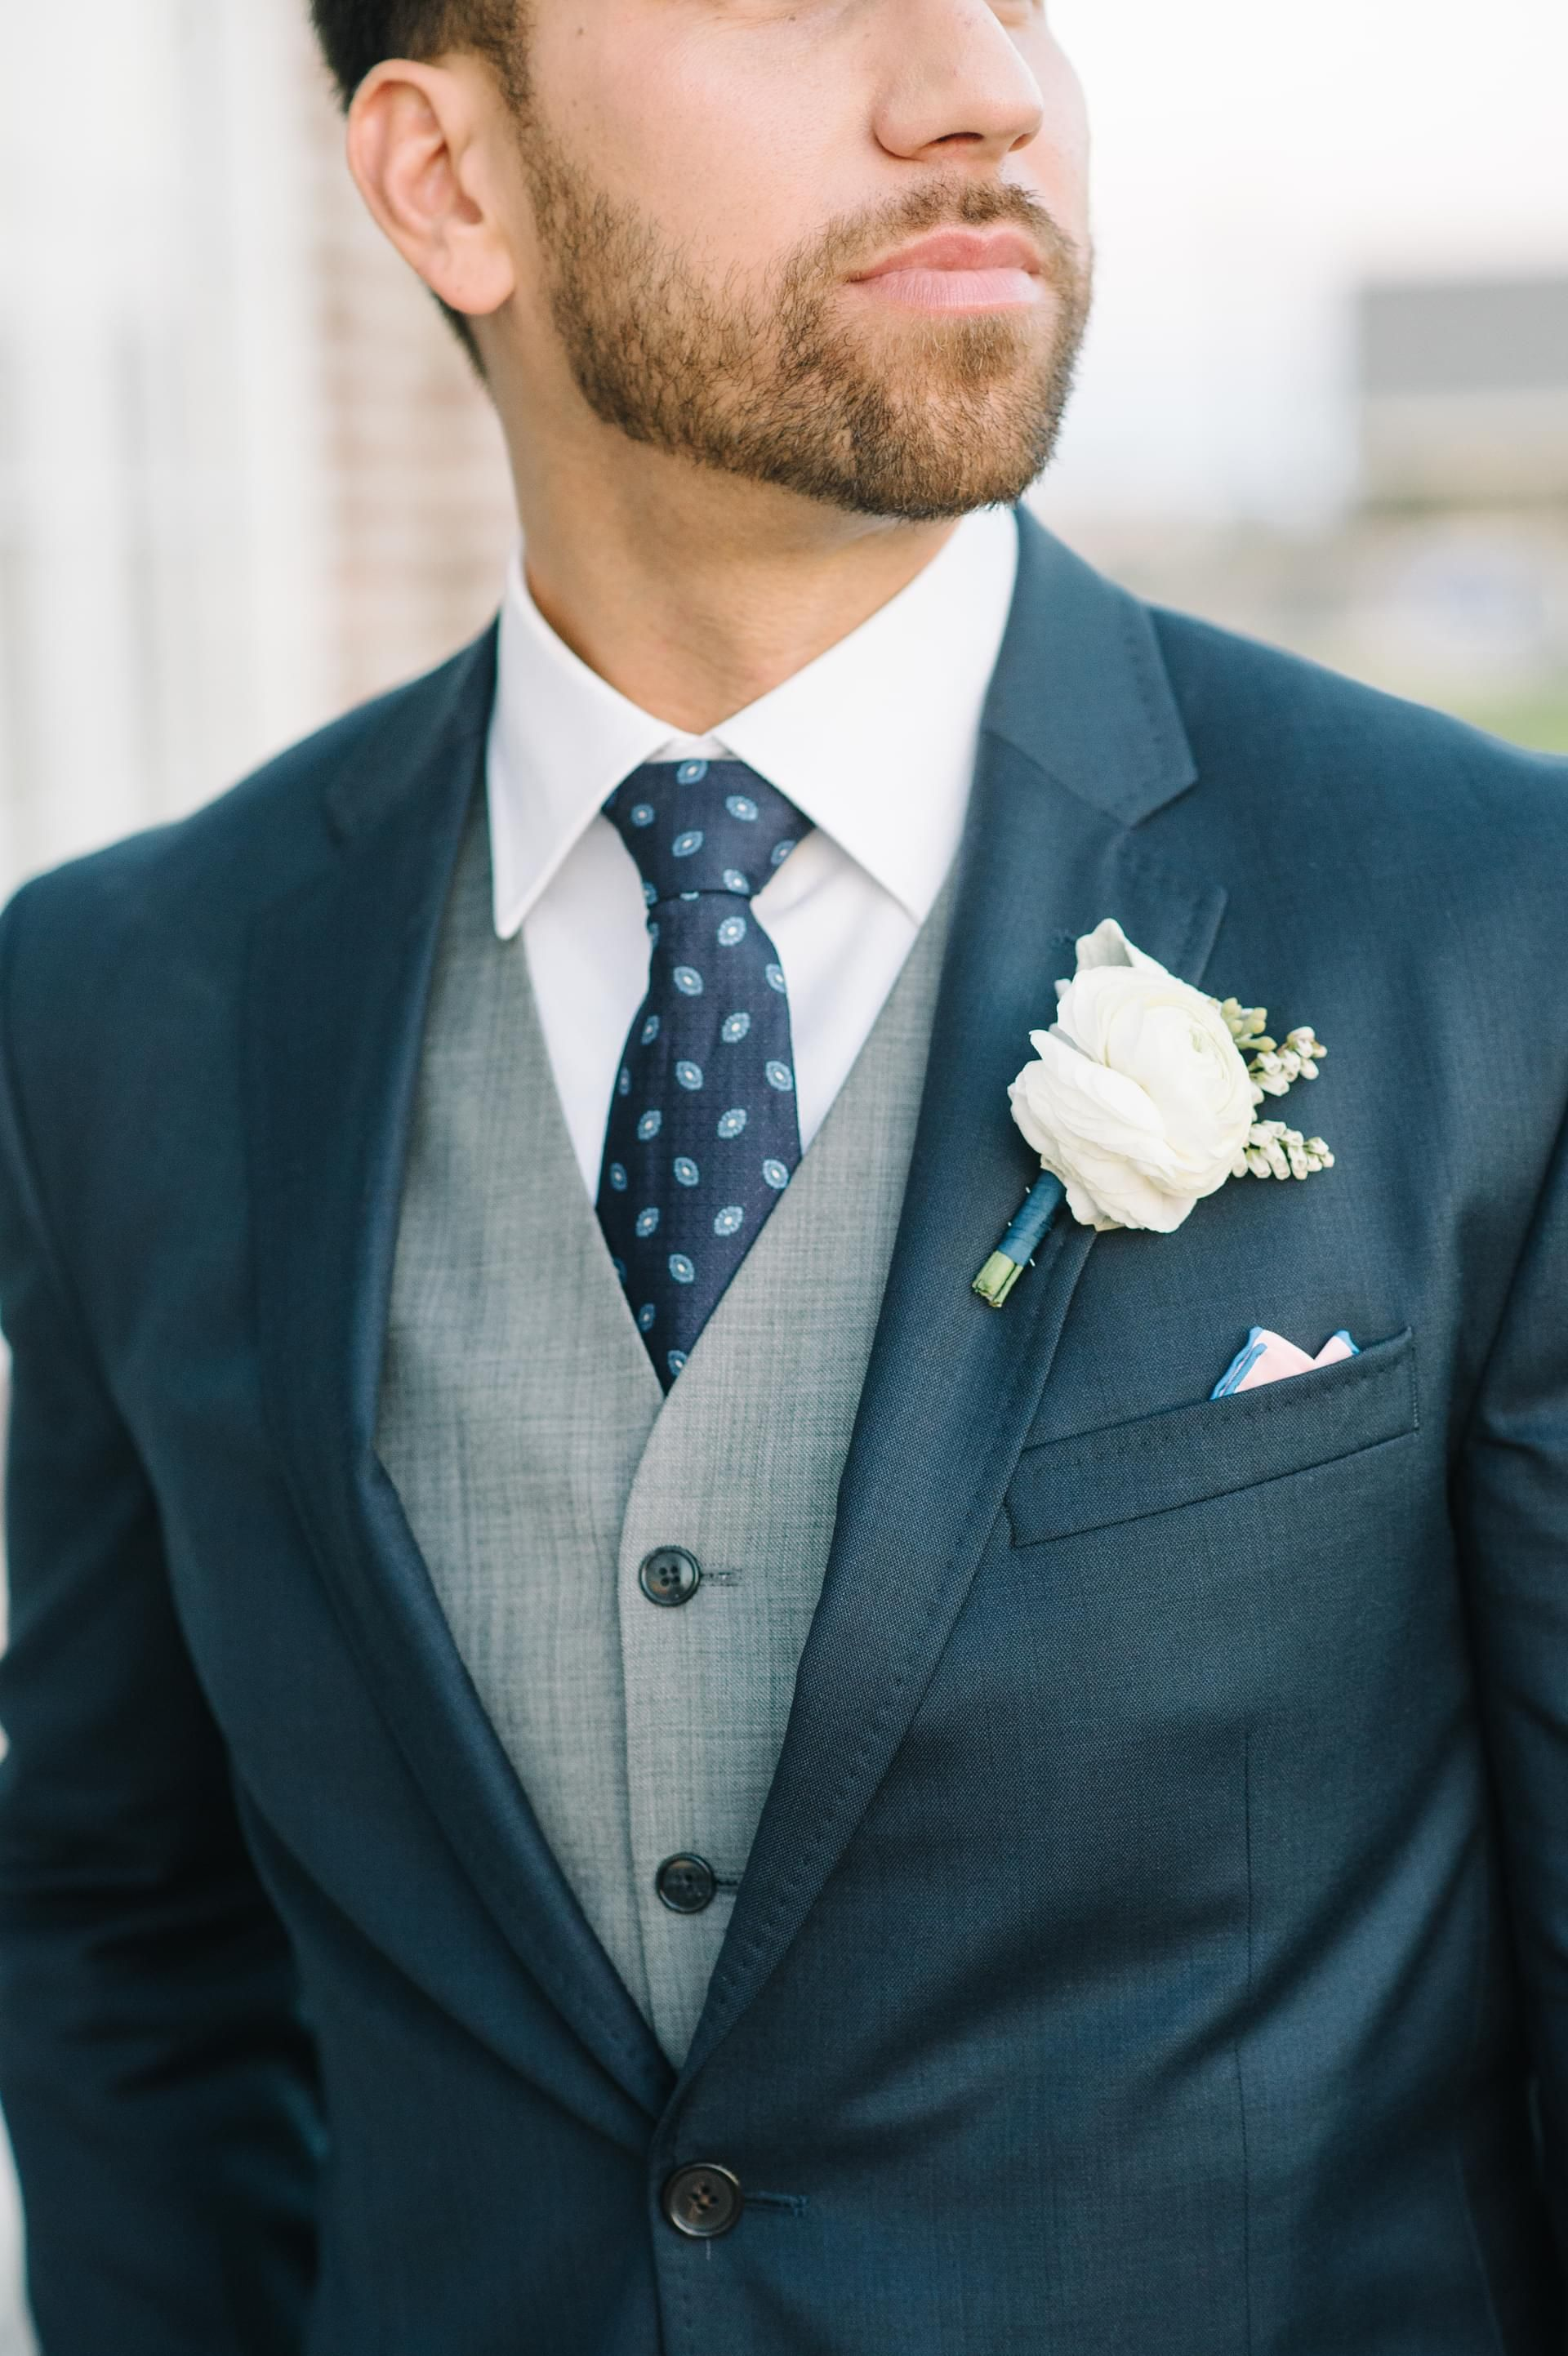 Navy Blue And Gray Suit - Go Suits